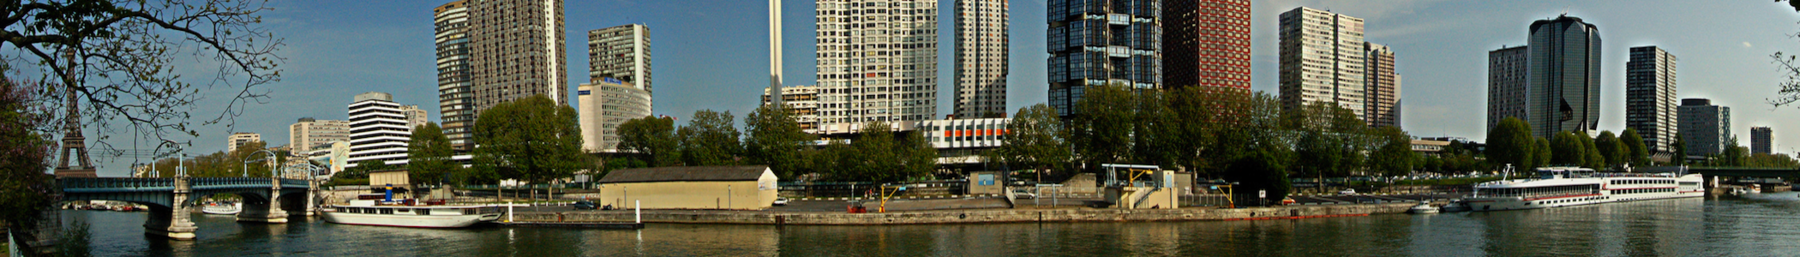 The Front de Seine of the 15th arrondissement